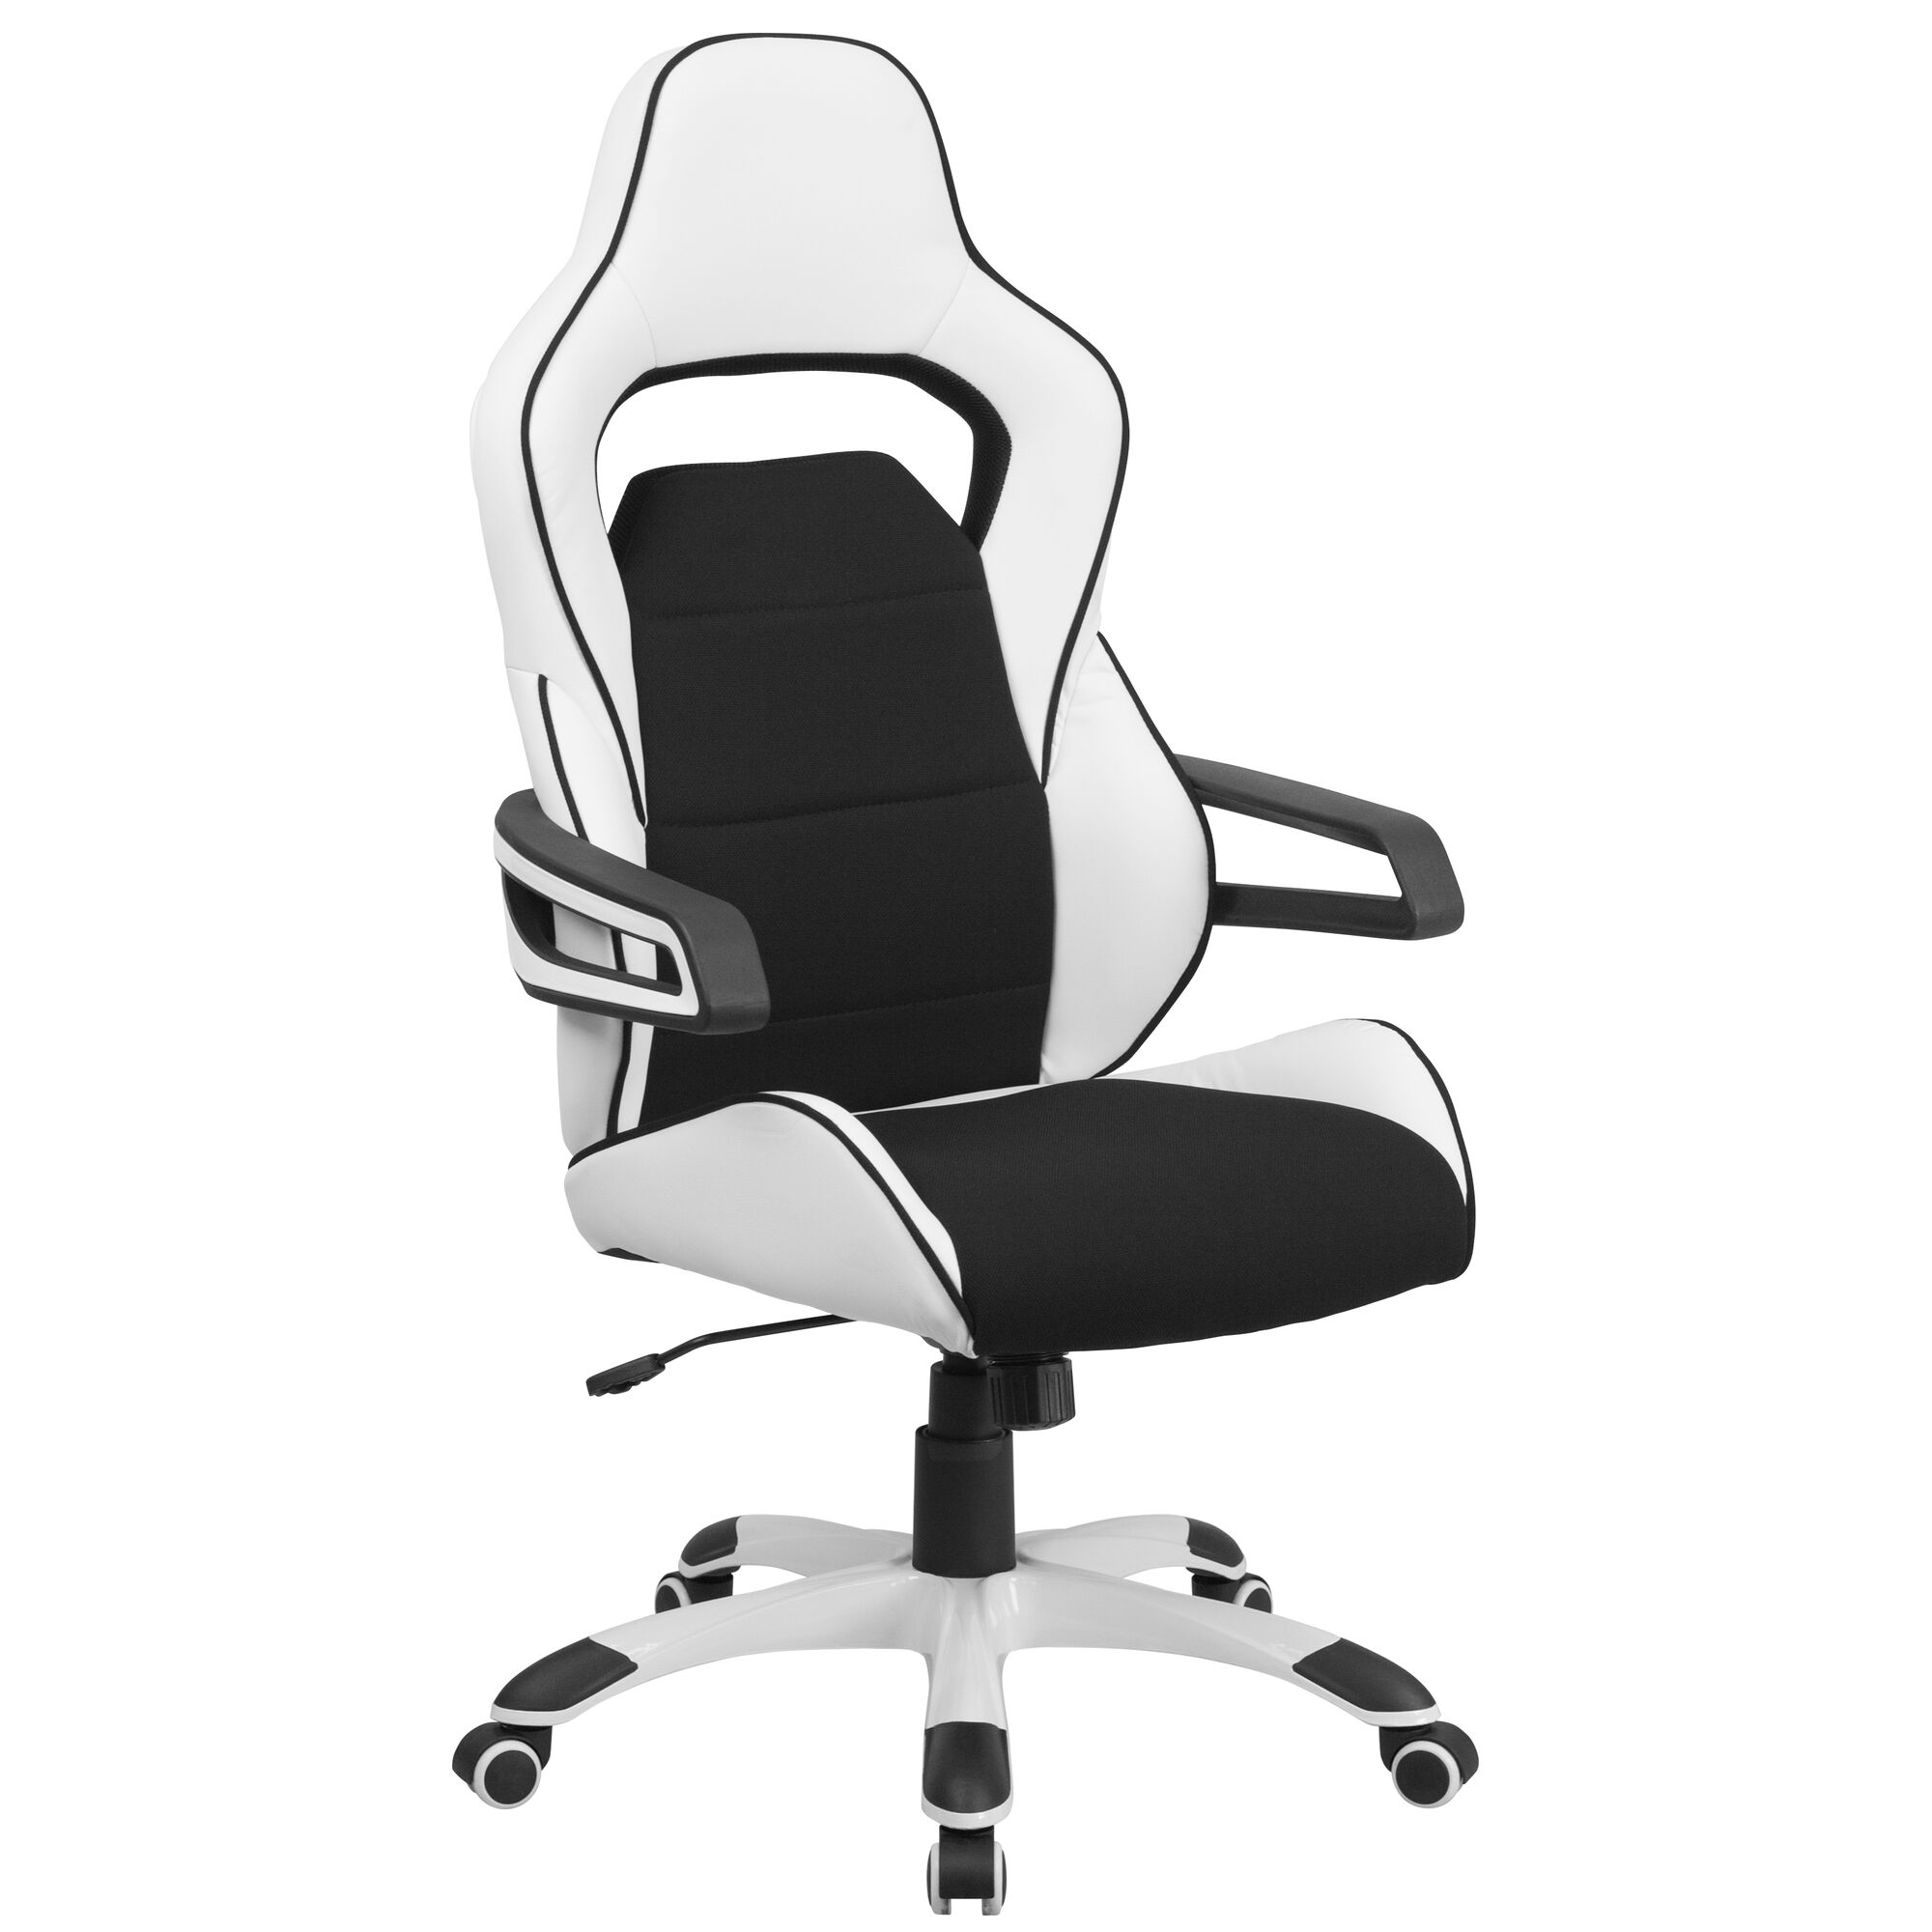 Surprising High Back White Vinyl Executive Swivel Office Chair With Black Fabric Inserts And Arms Onthecornerstone Fun Painted Chair Ideas Images Onthecornerstoneorg